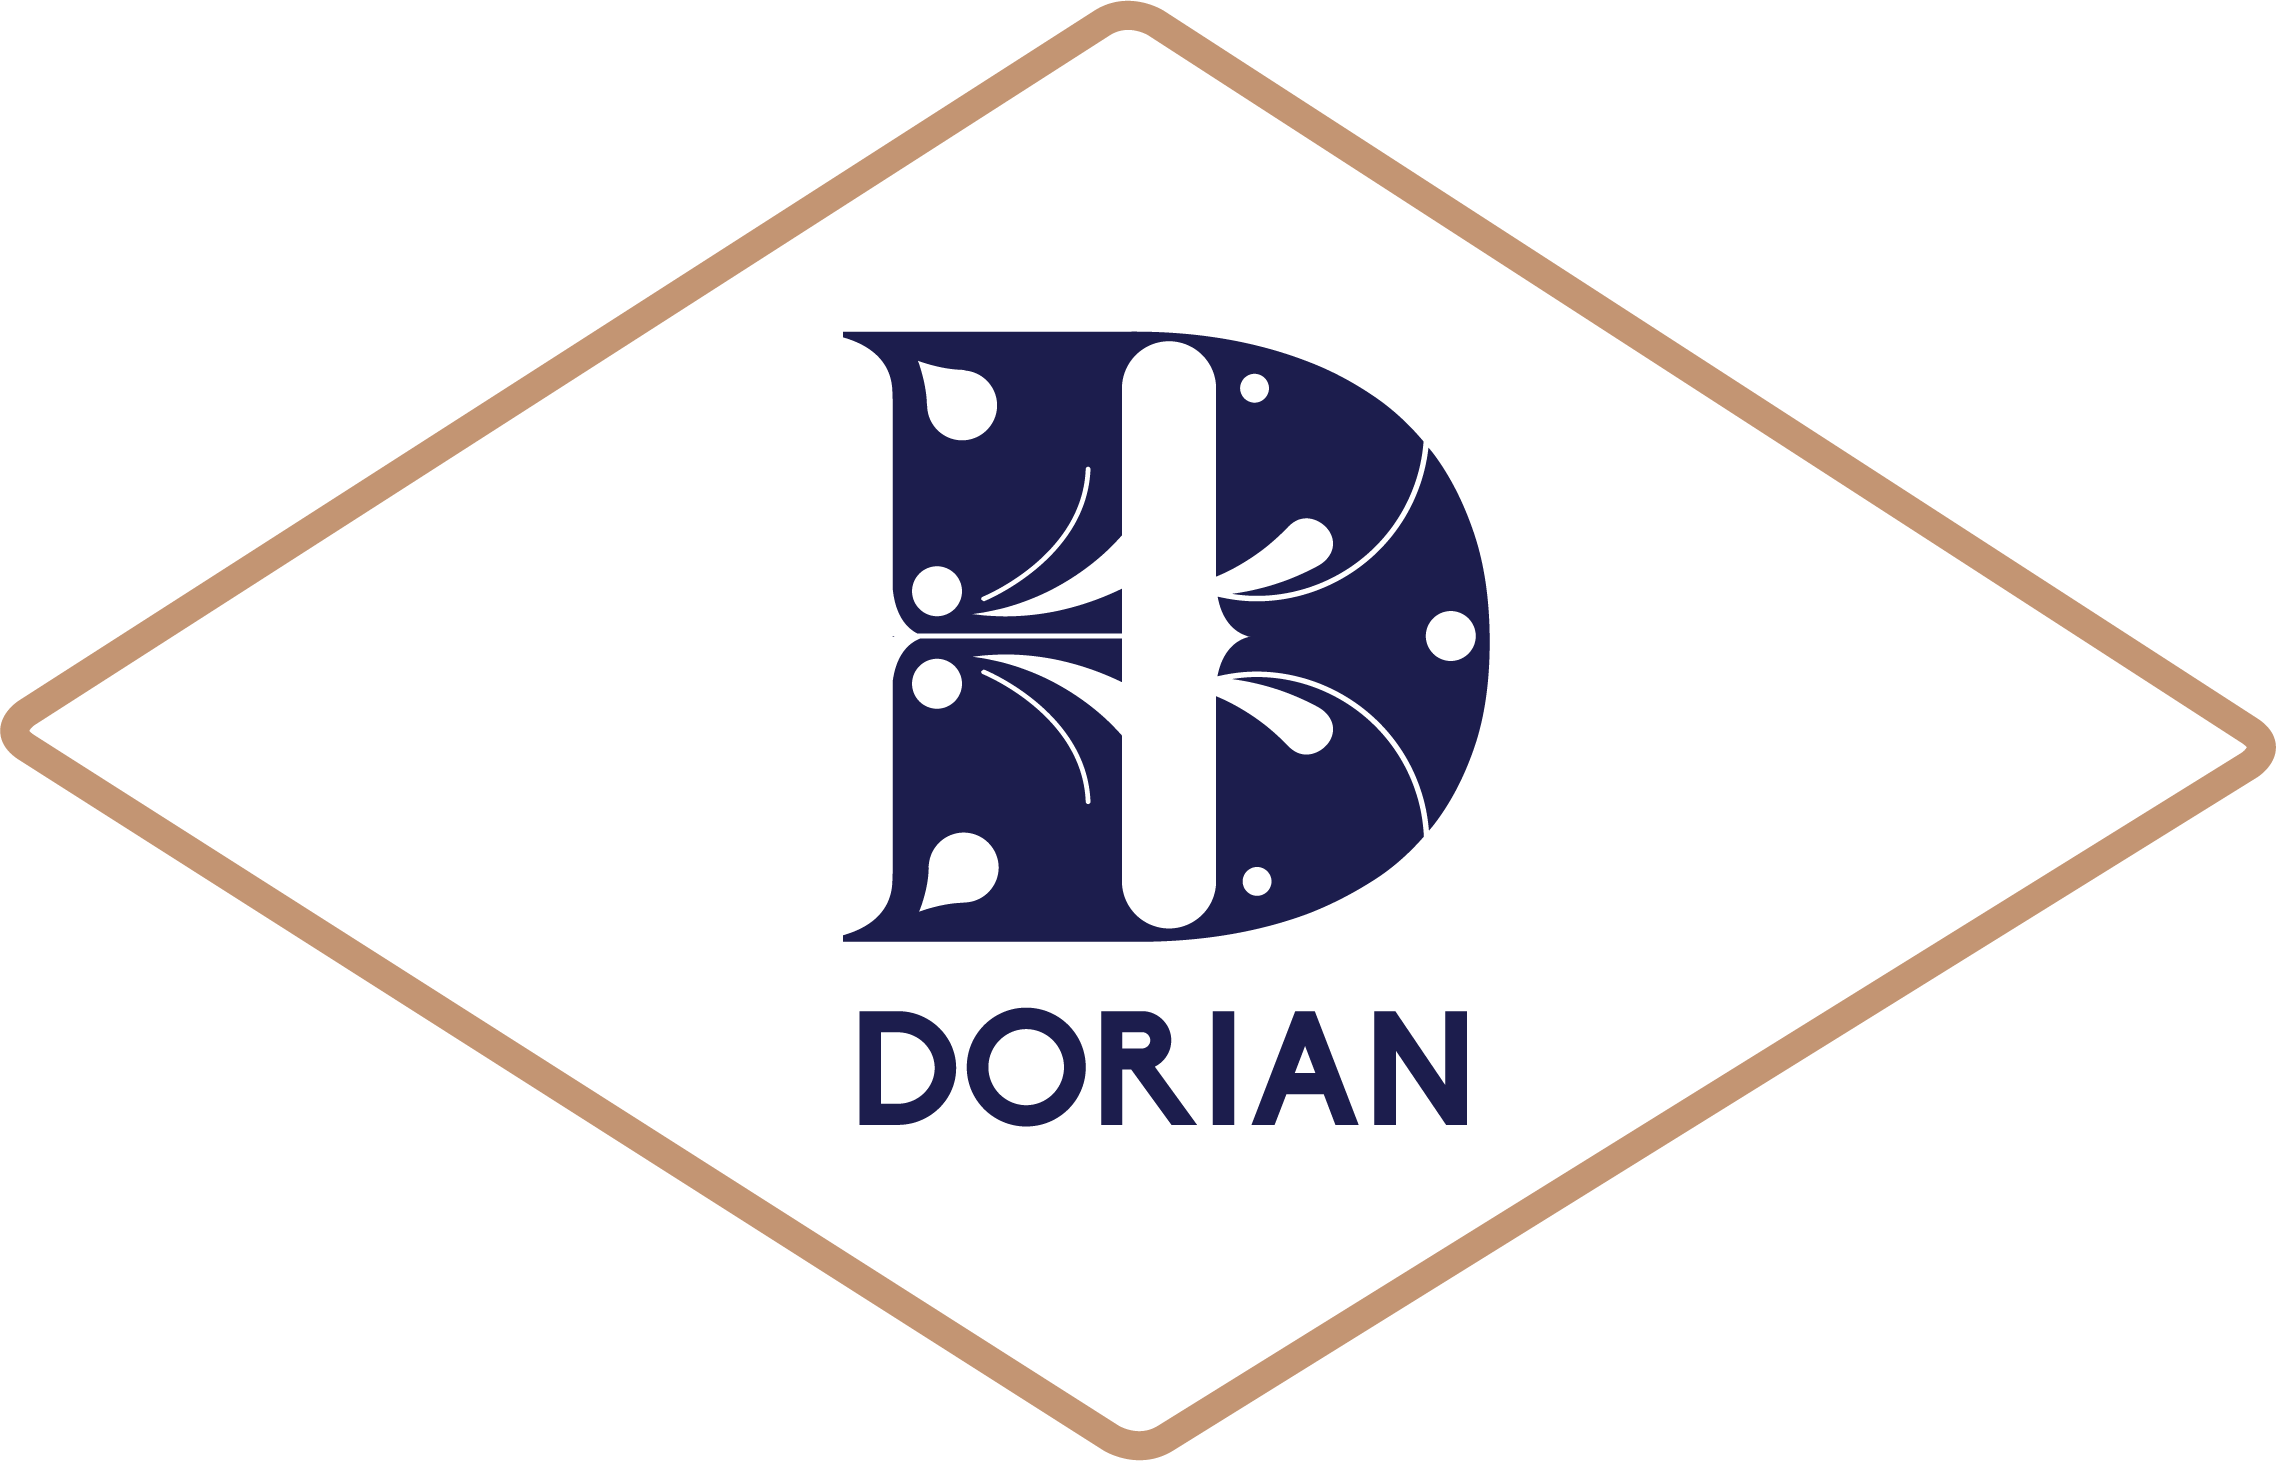 Thanks to Dorian for sponsoring this month's Community Mixer with not only the space, but with food and a rosé sampling as well!